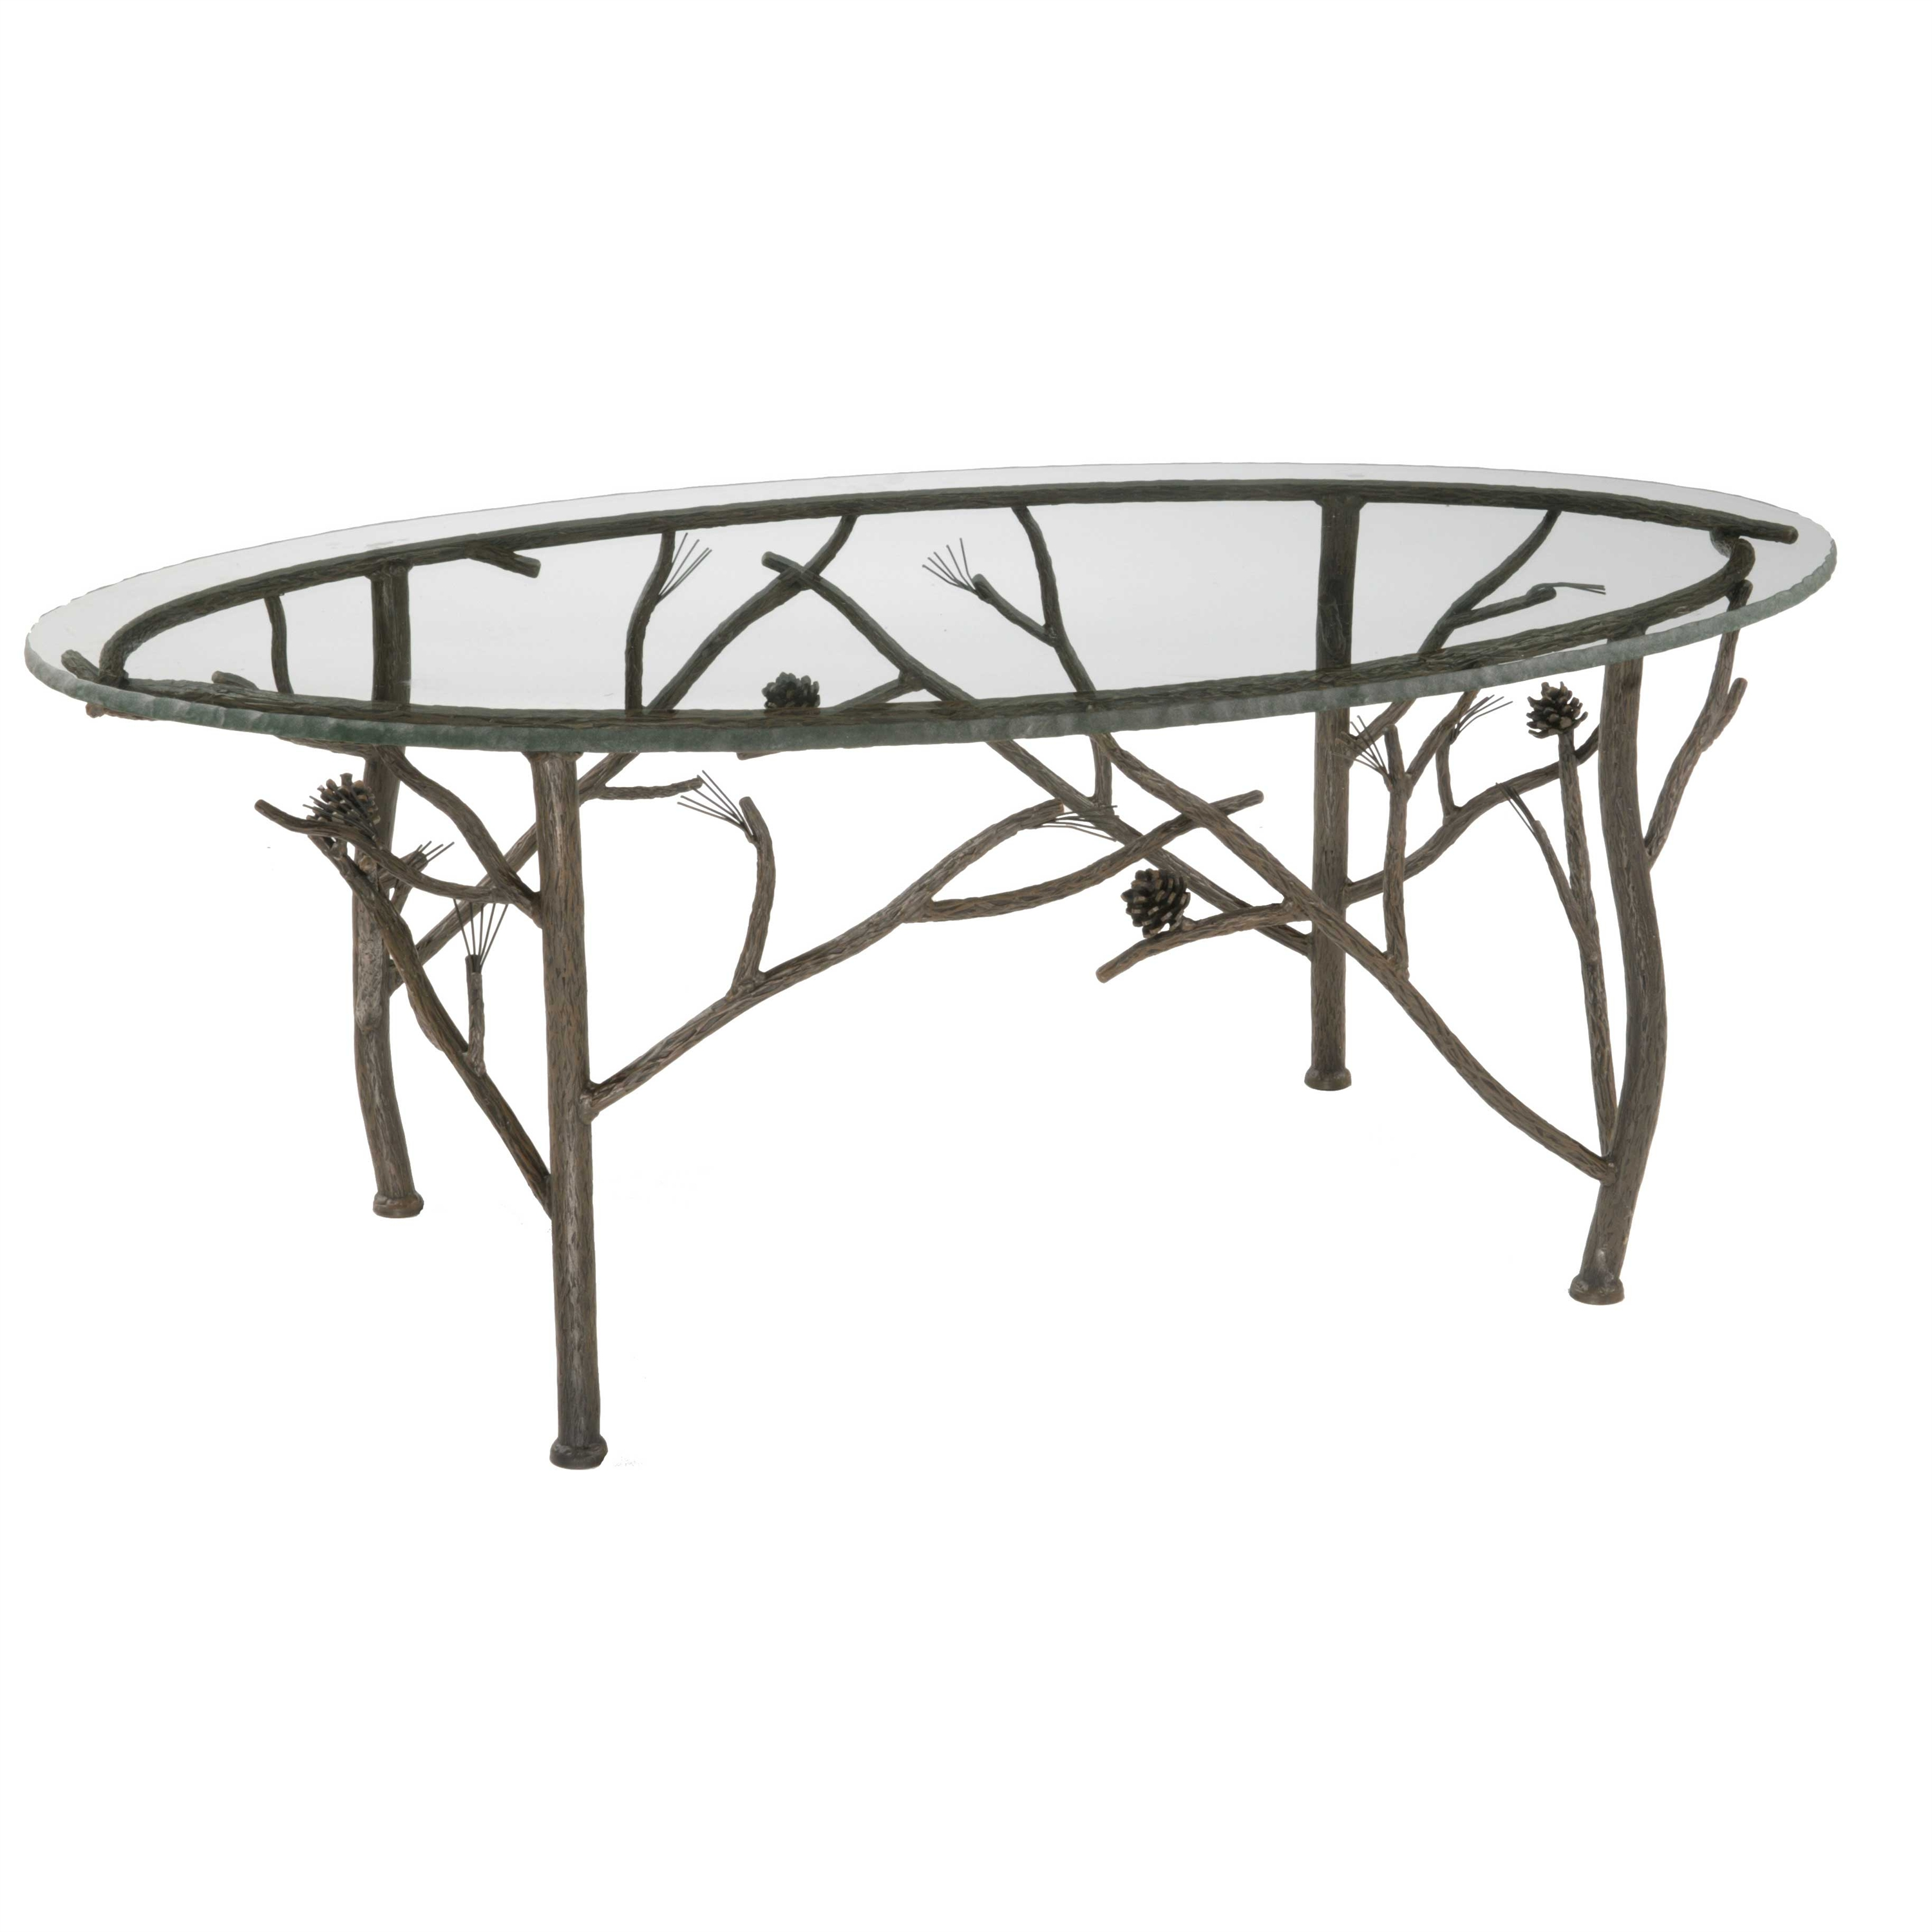 Wrought iron rustic pine oval coffee table by stone county for Oval copper coffee table